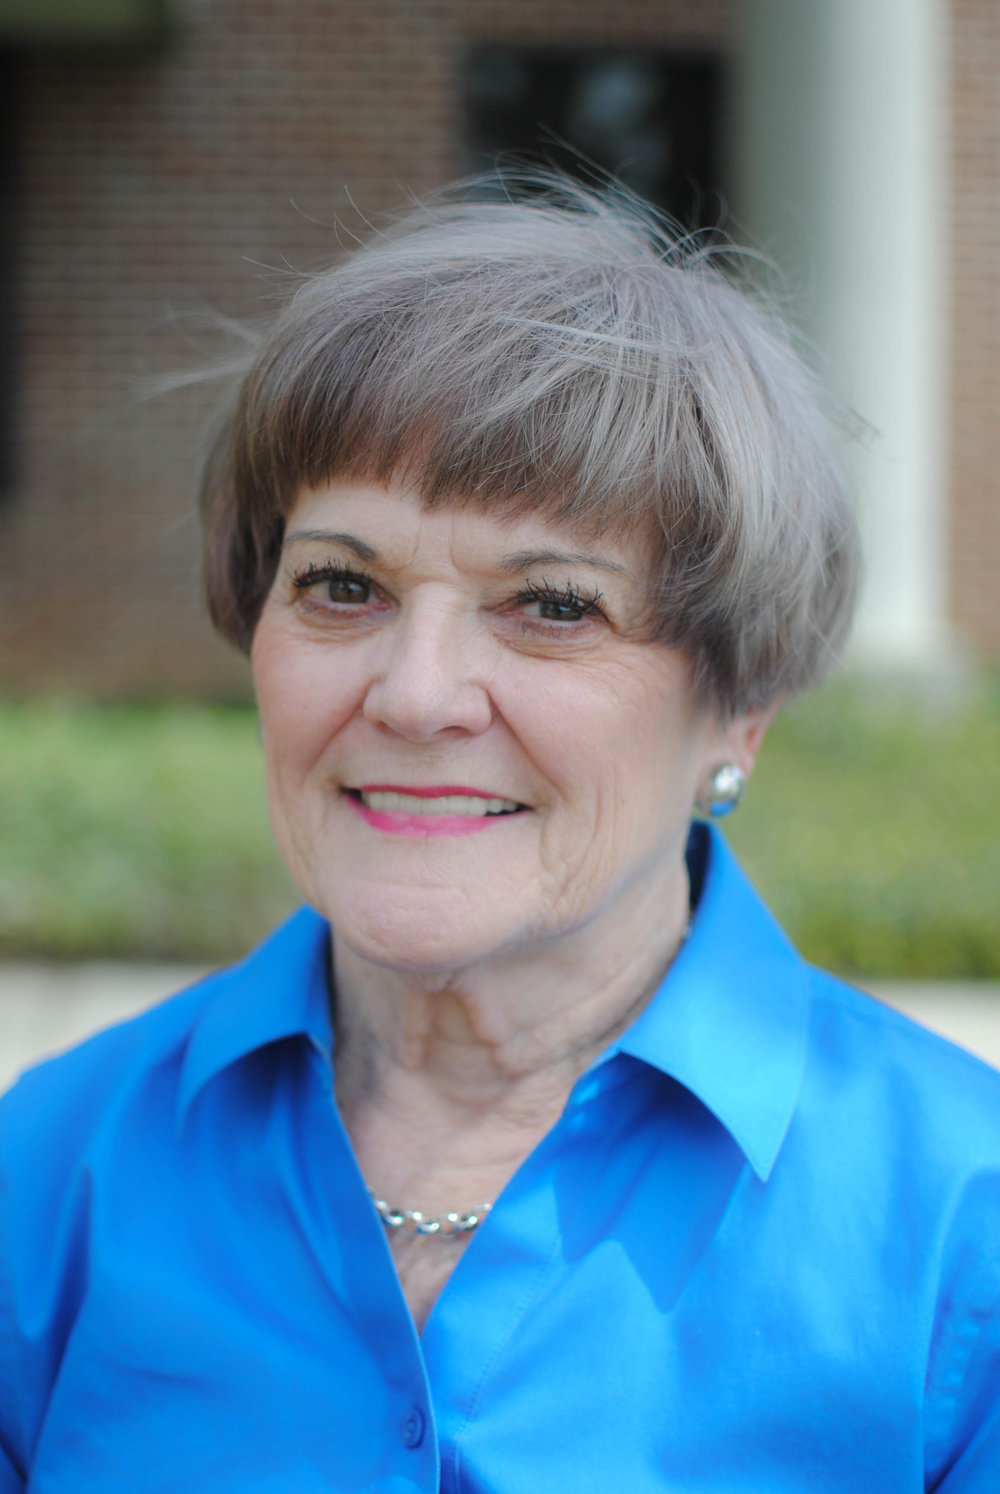 Jean, as President of Employer HR Group, contributes years of executive experience to our company with her education in business economics from Winthrop University and her experience in management.